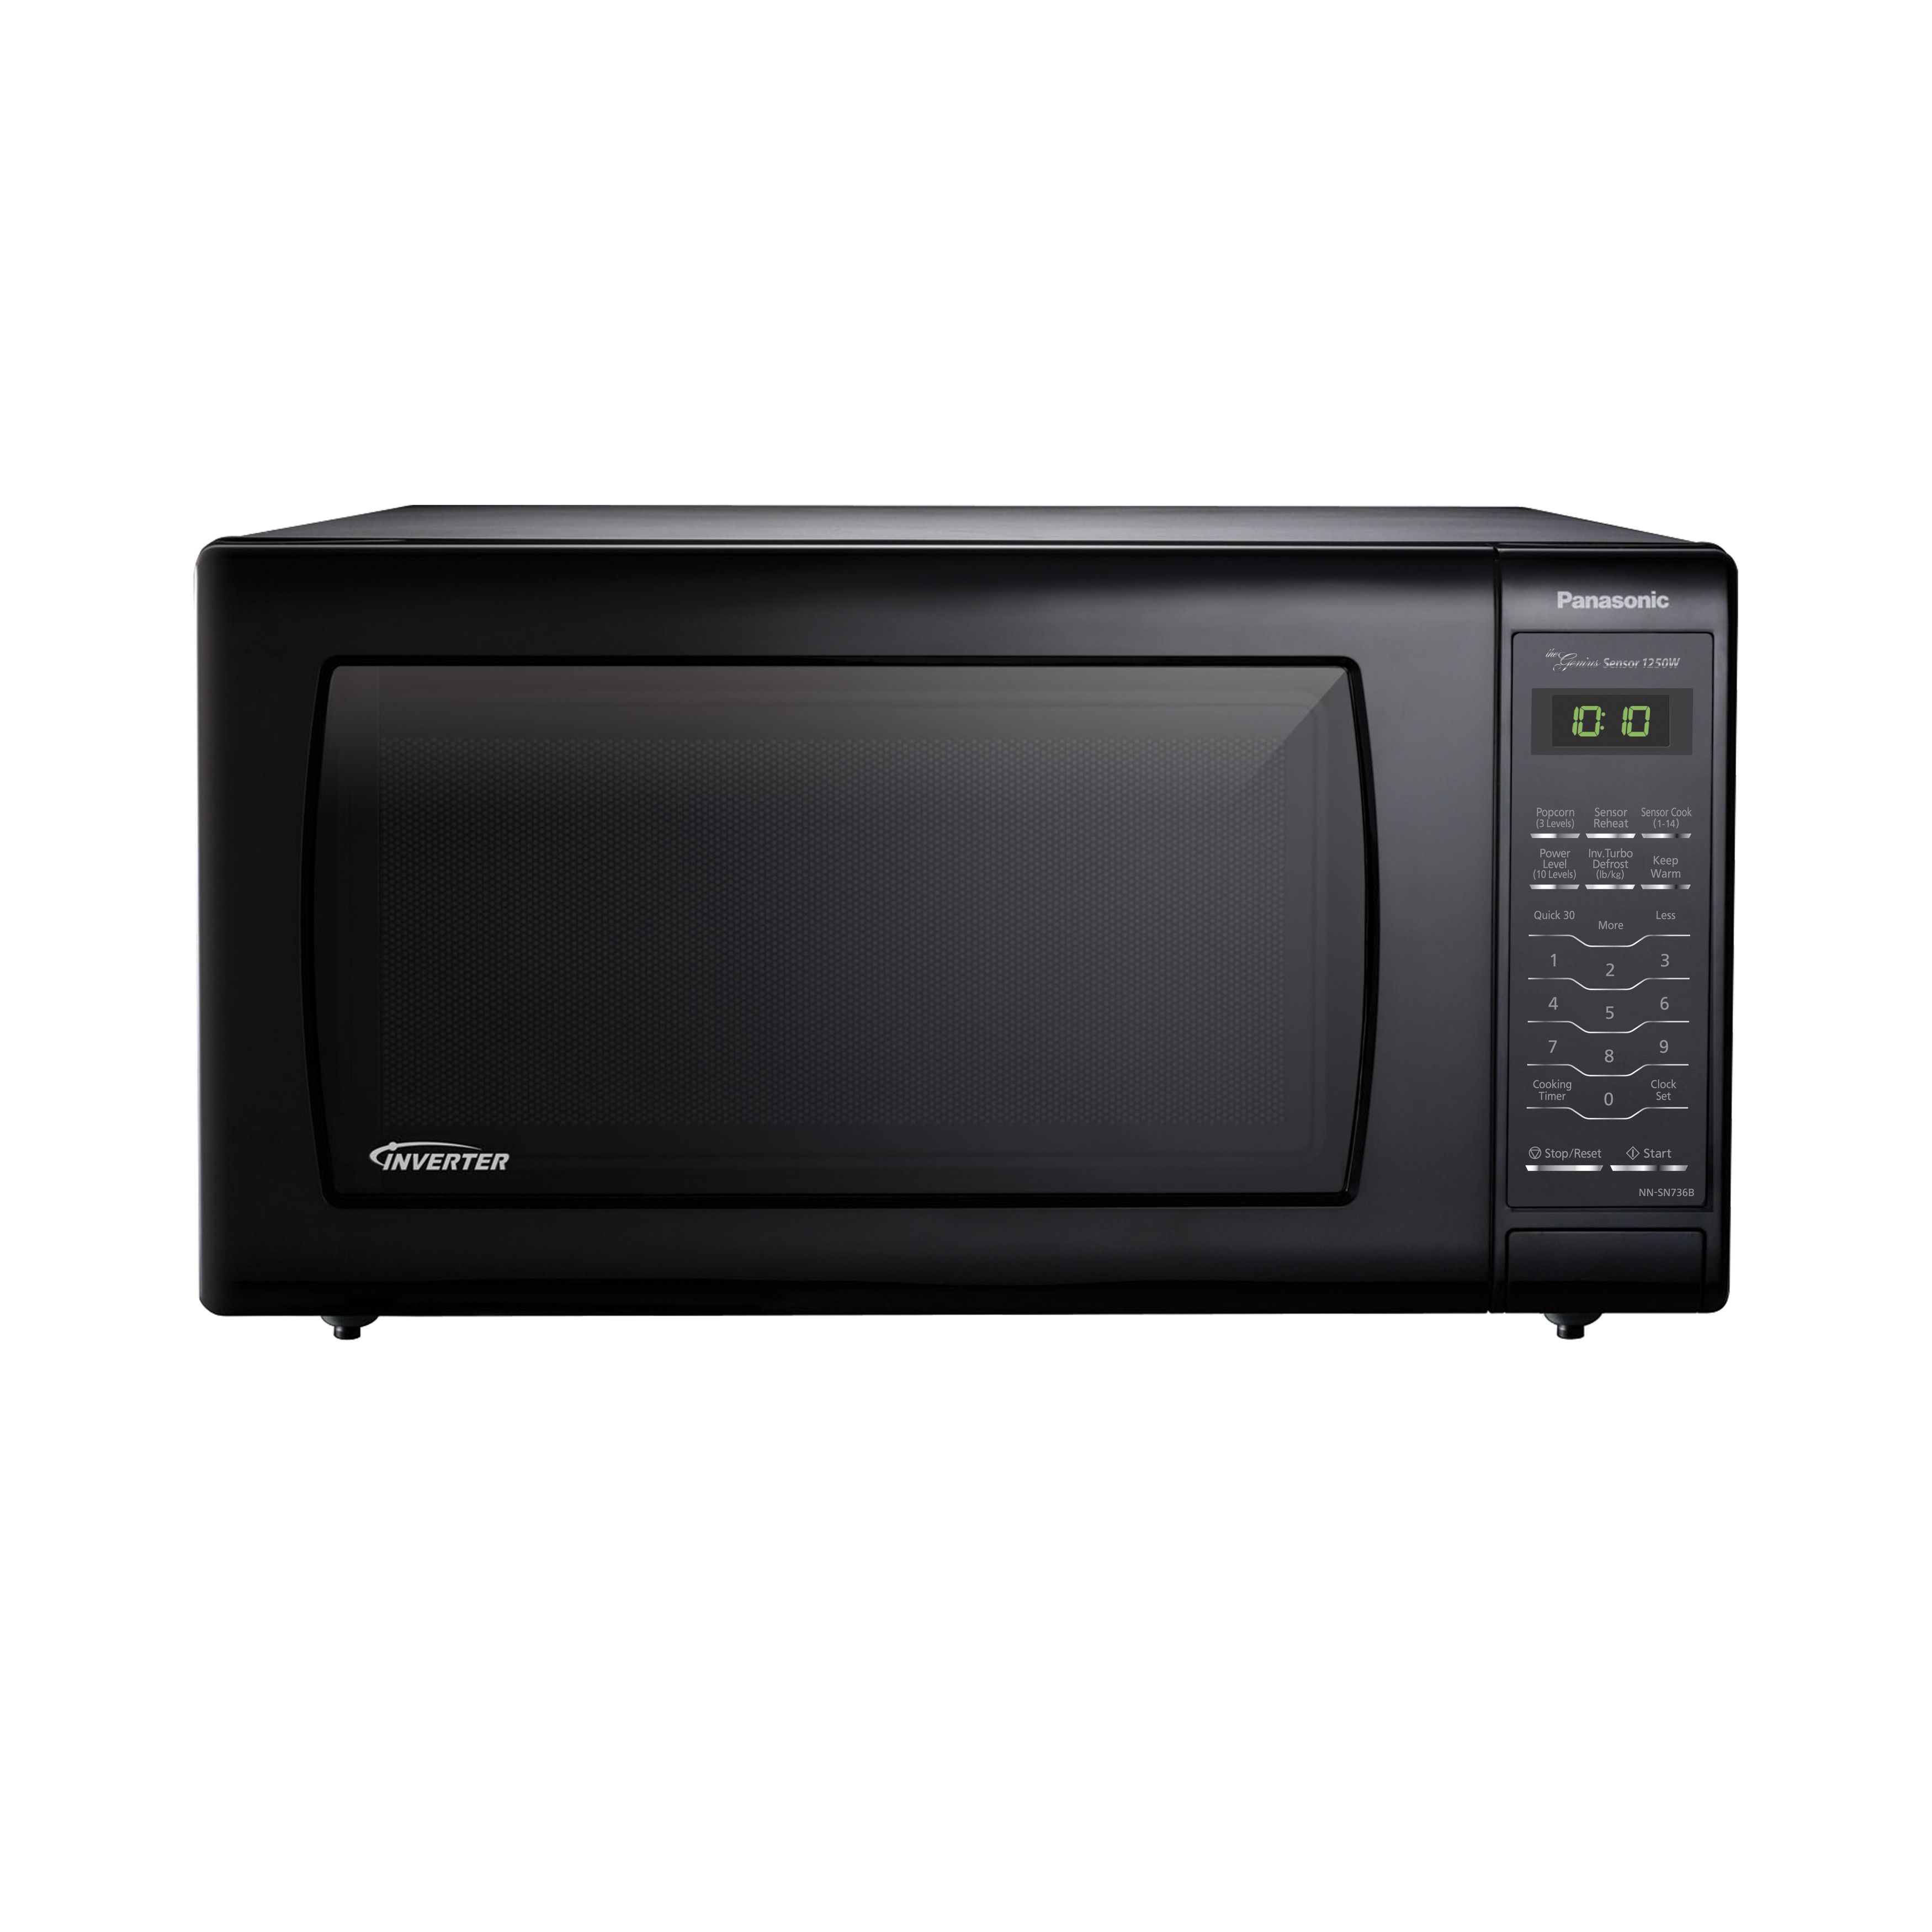 Panasonic Microwave Oven With Inverter Technology Black